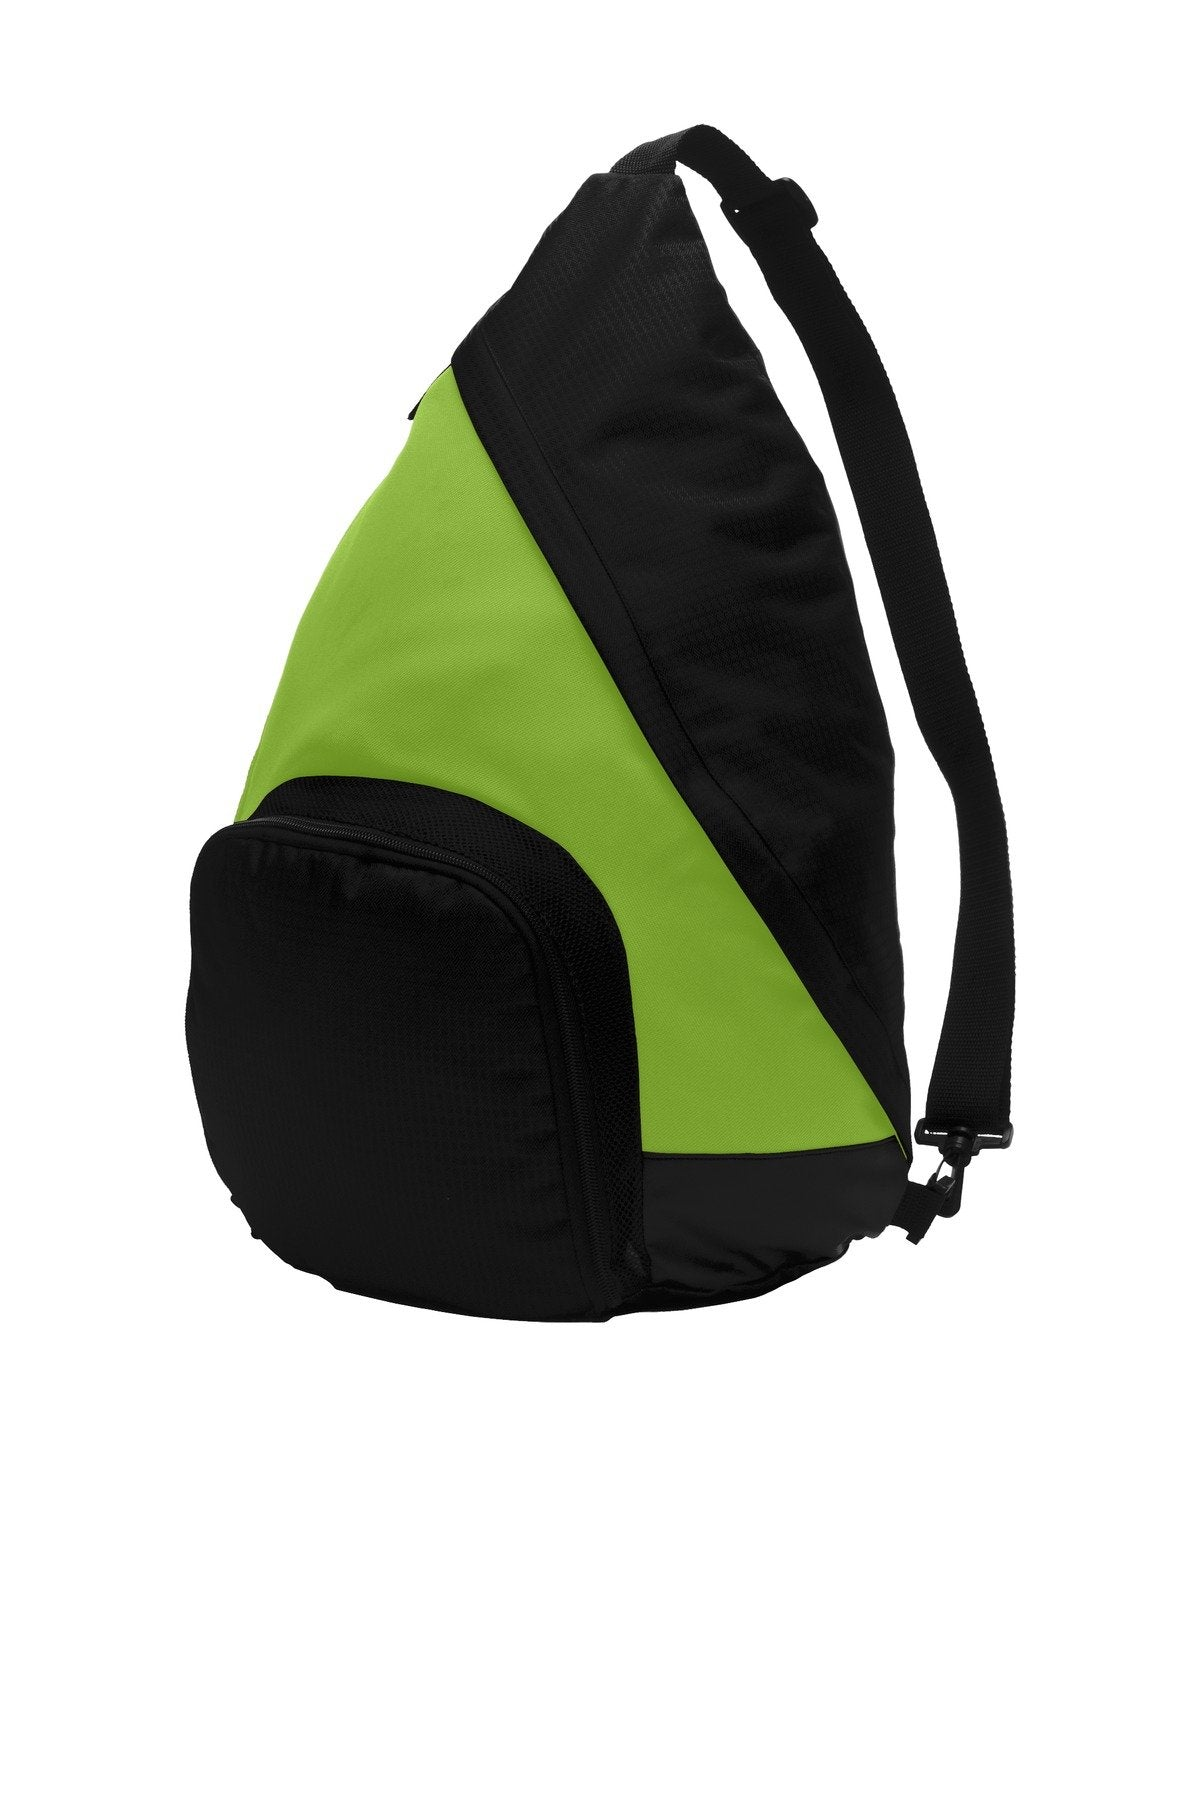 Lime Shock/ Black - Port Authority BG206